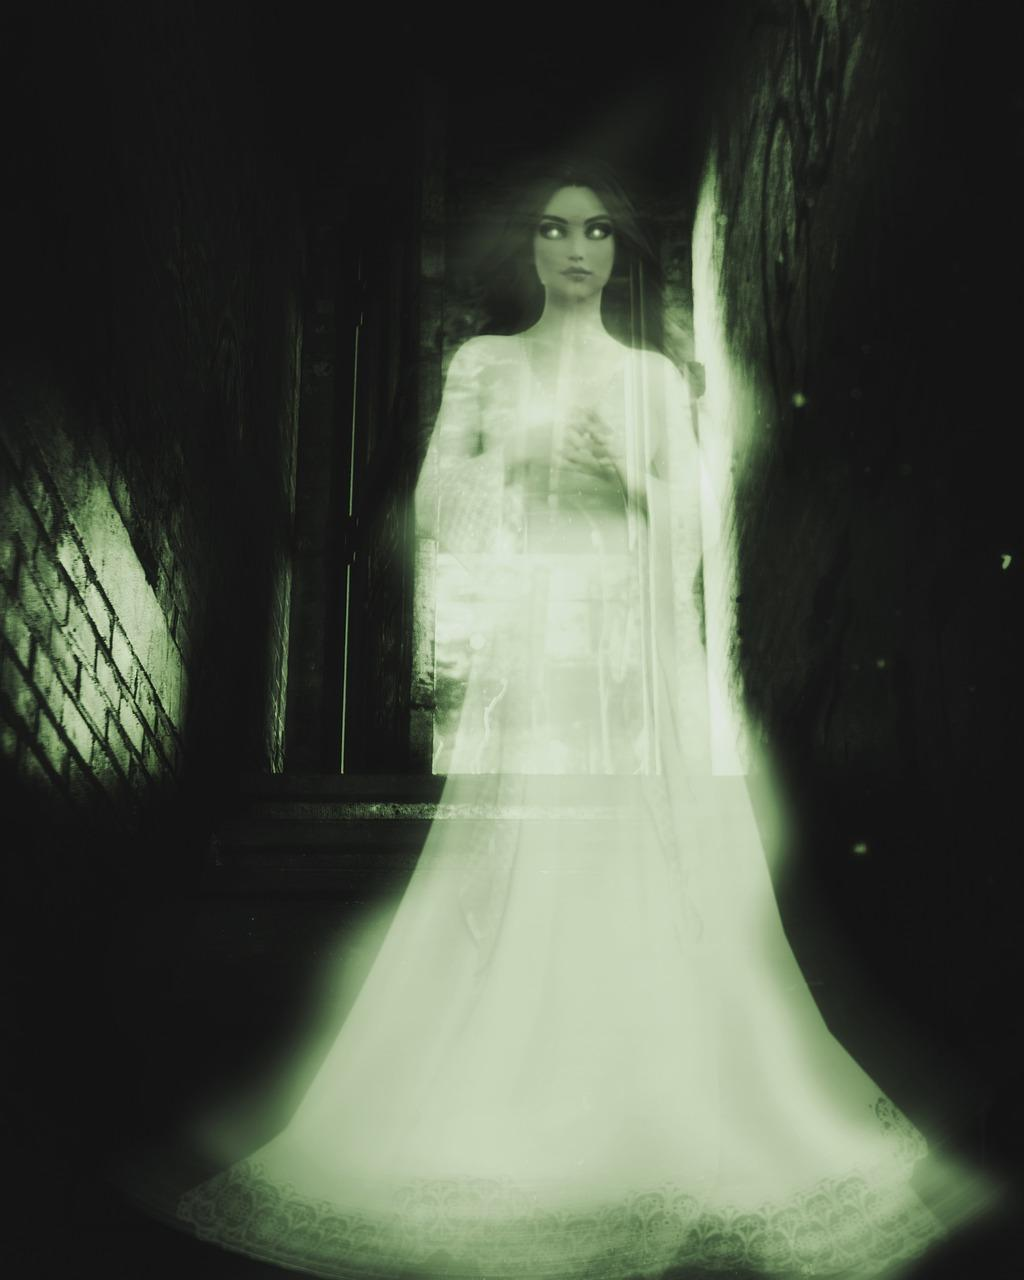 The Ghost in the Dream